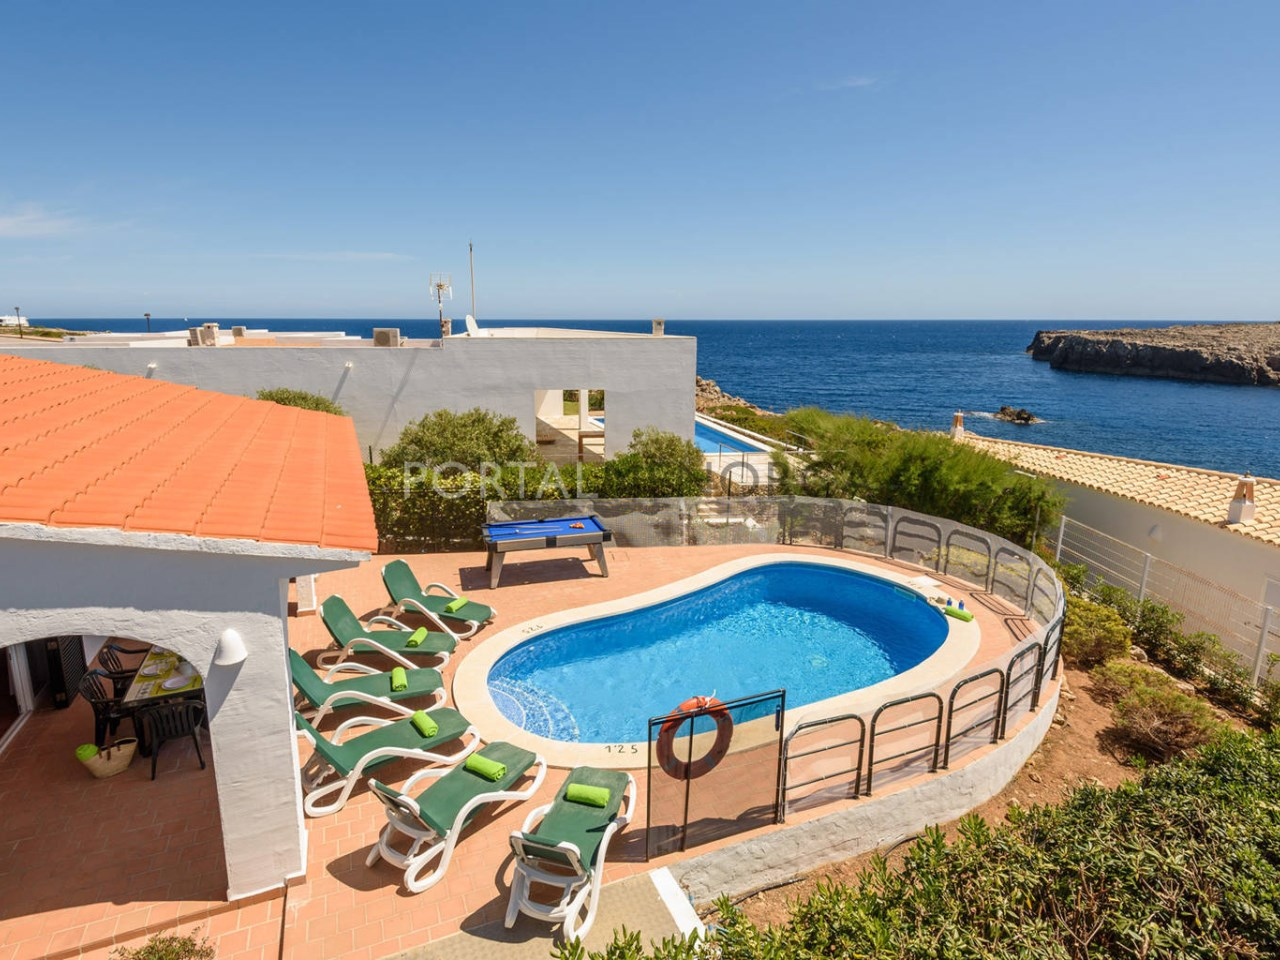 Villa by the sea with swimming pool for sale in Punta Grossa